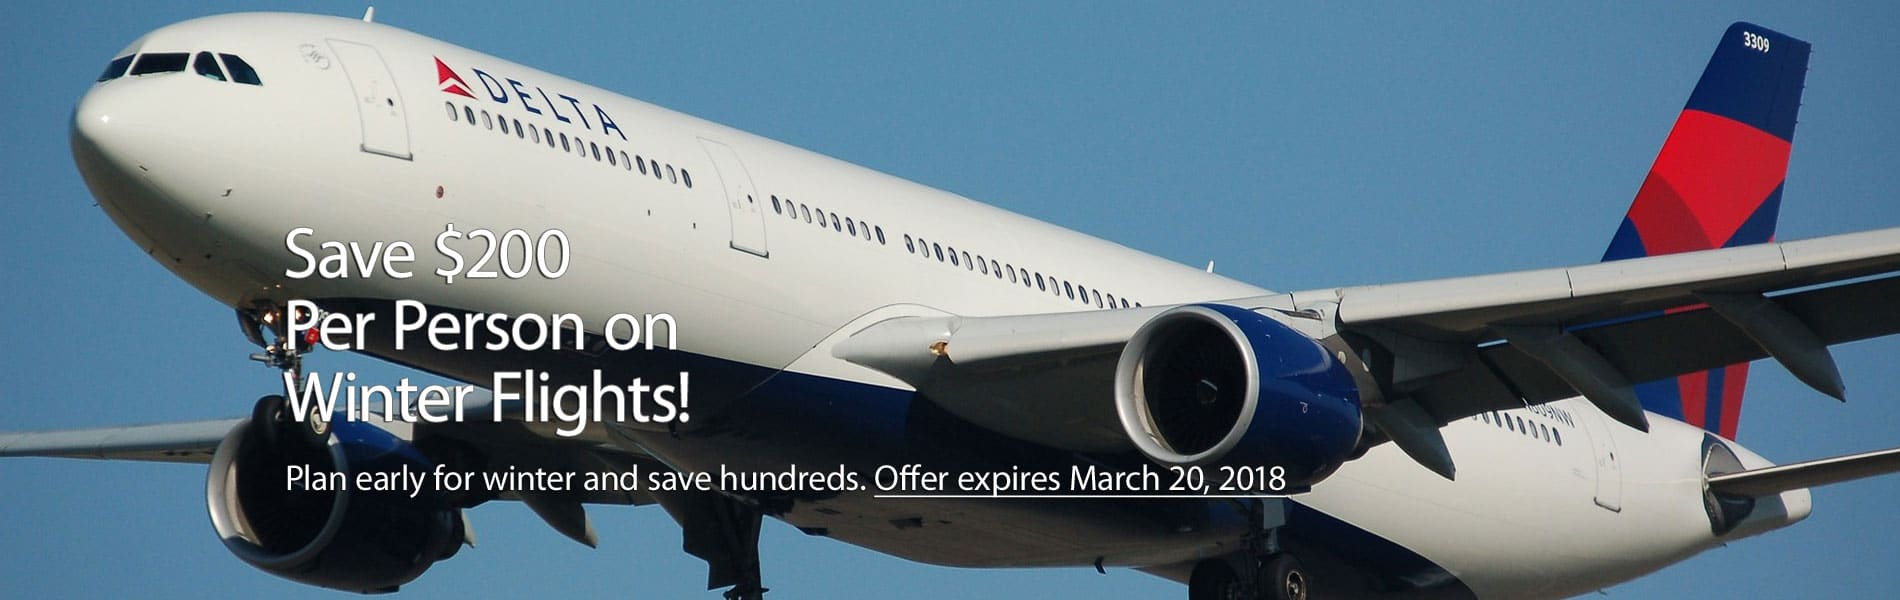 delta airline with $200 saving for winter flight text